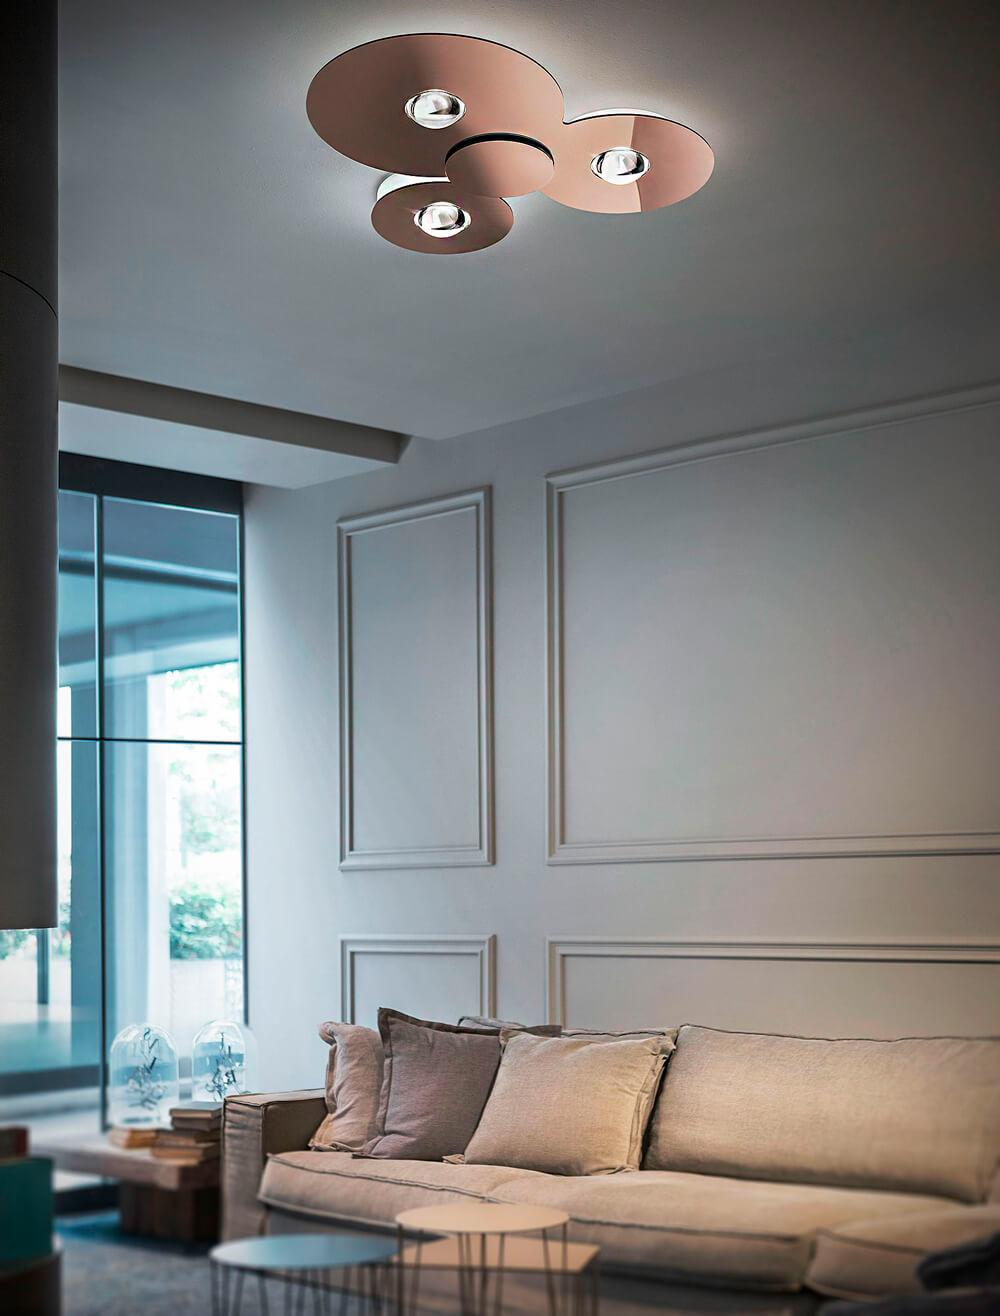 Lodes Bugia Ceiling Lights